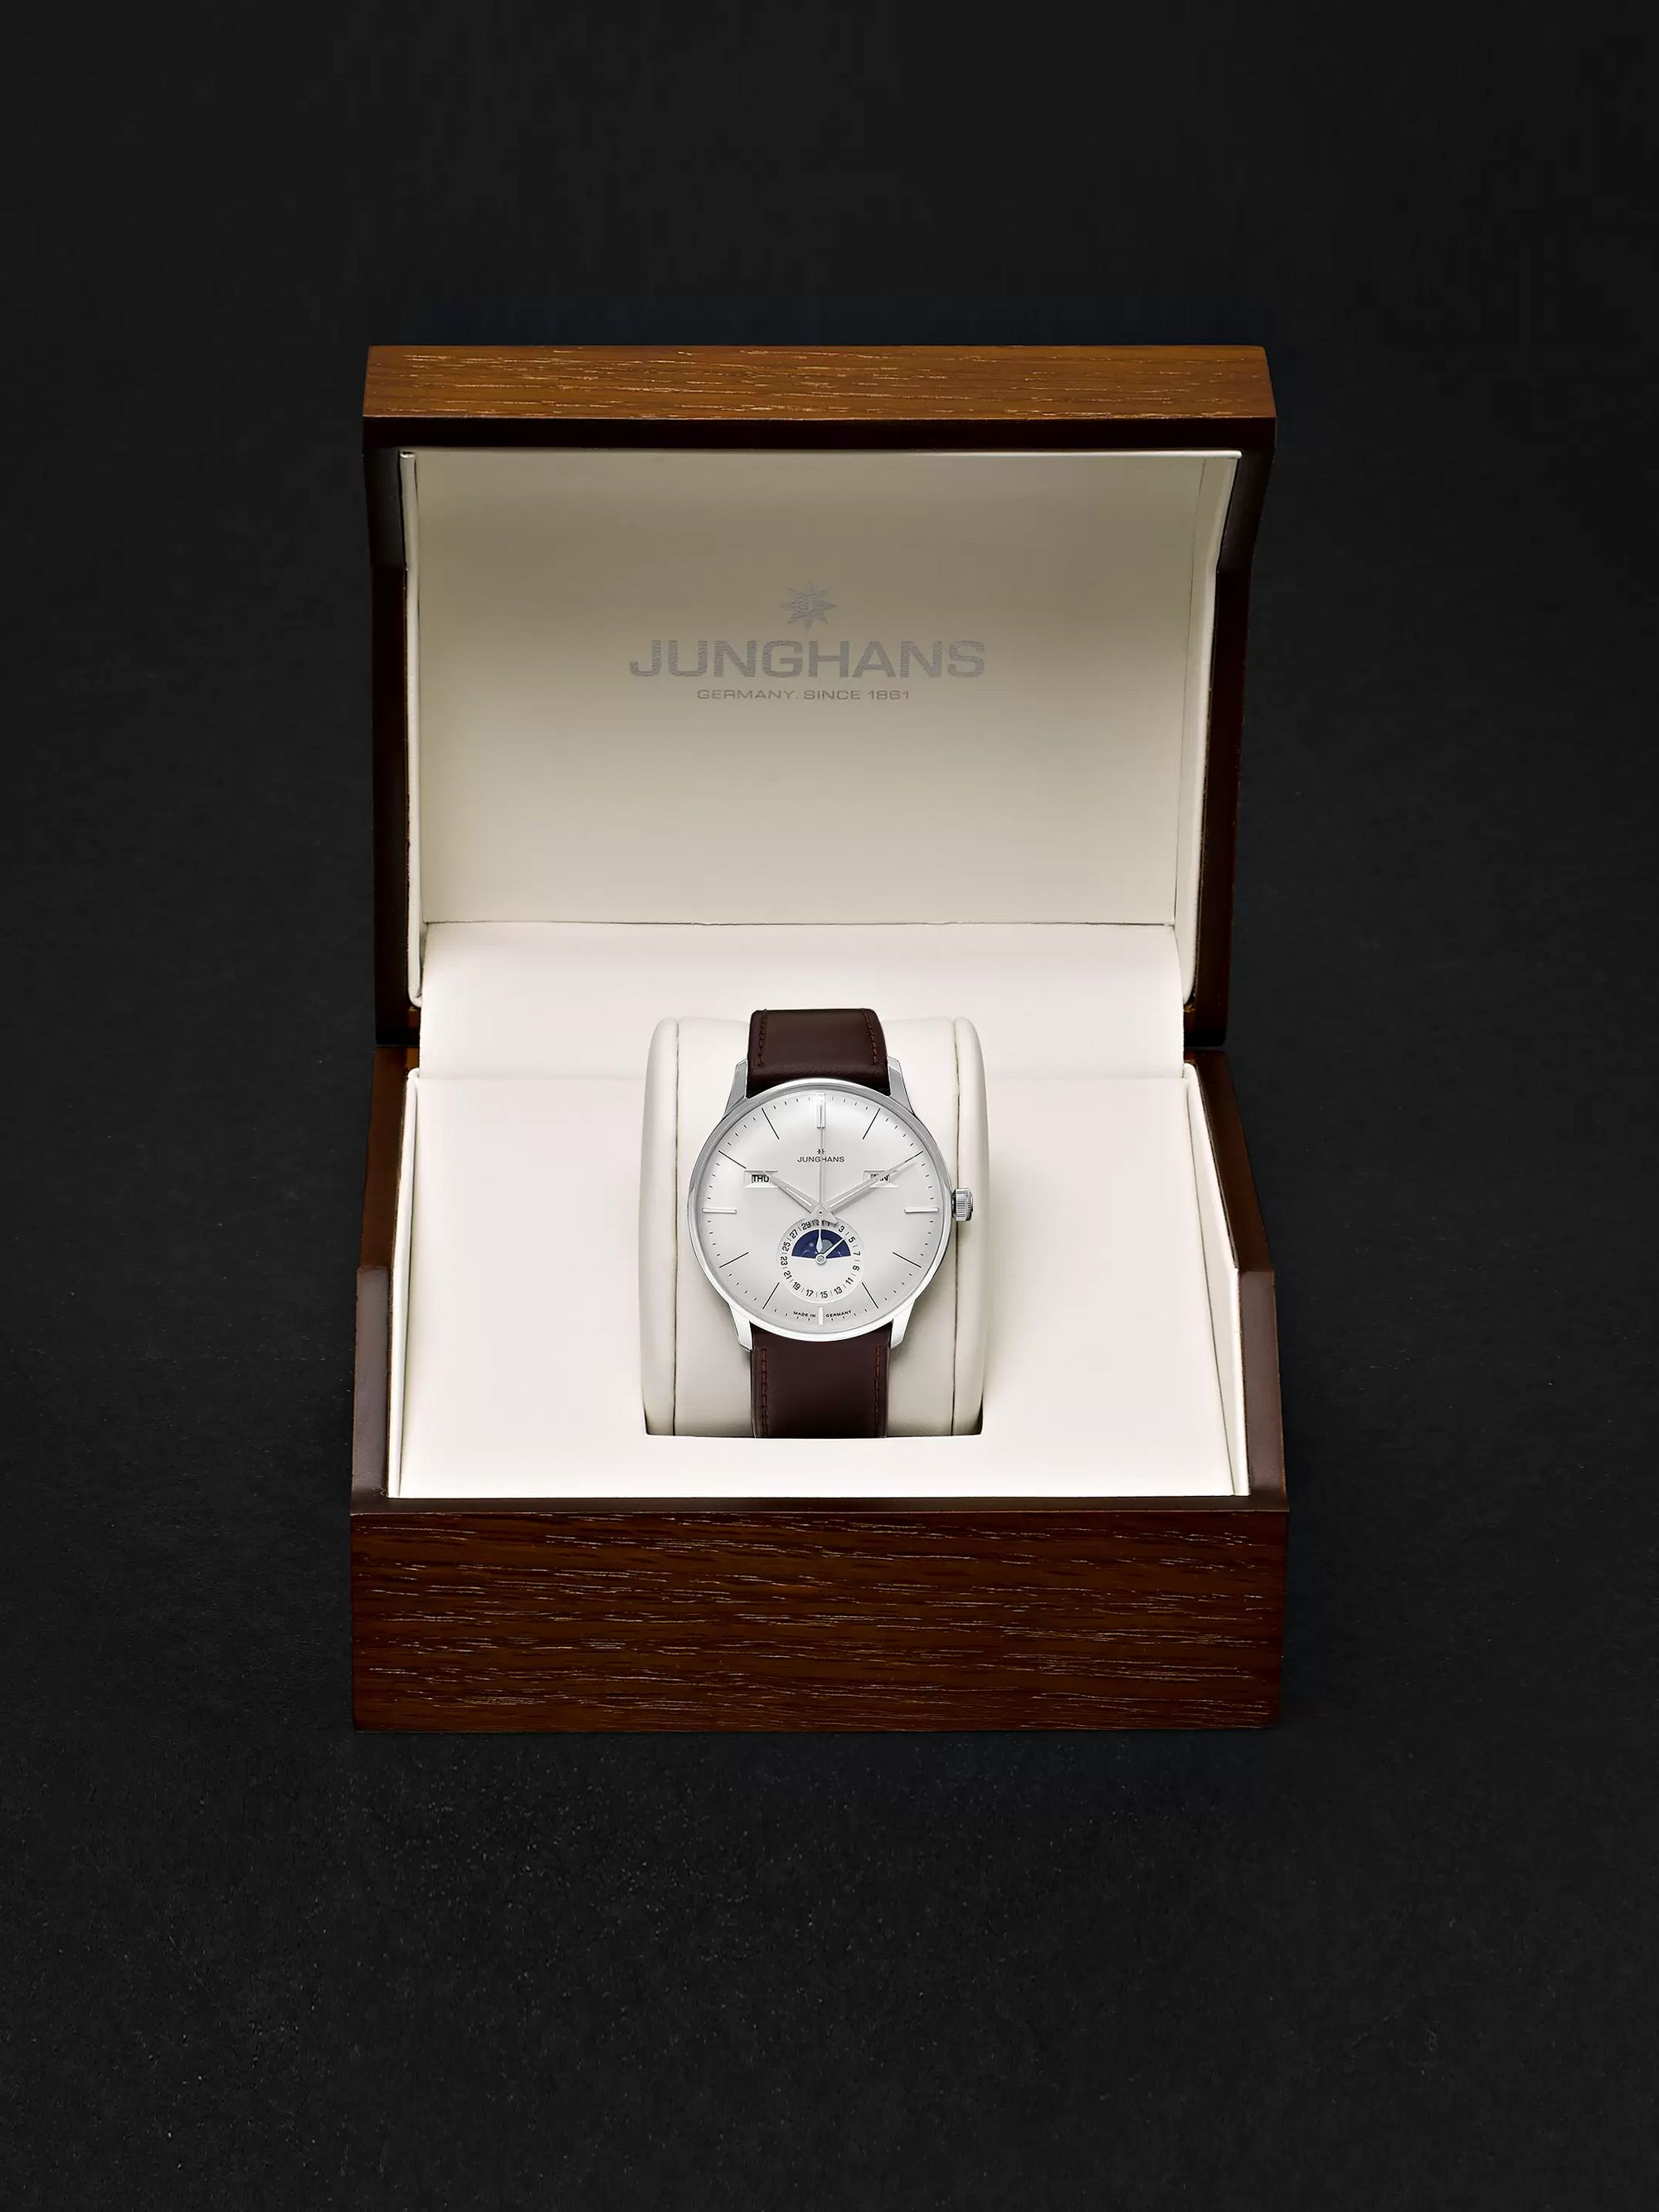 Junghans Meister Kalender Automatic Moon-Phase 40mm Stainless Steel and Leather Watch, Ref. No. 027/4200.01